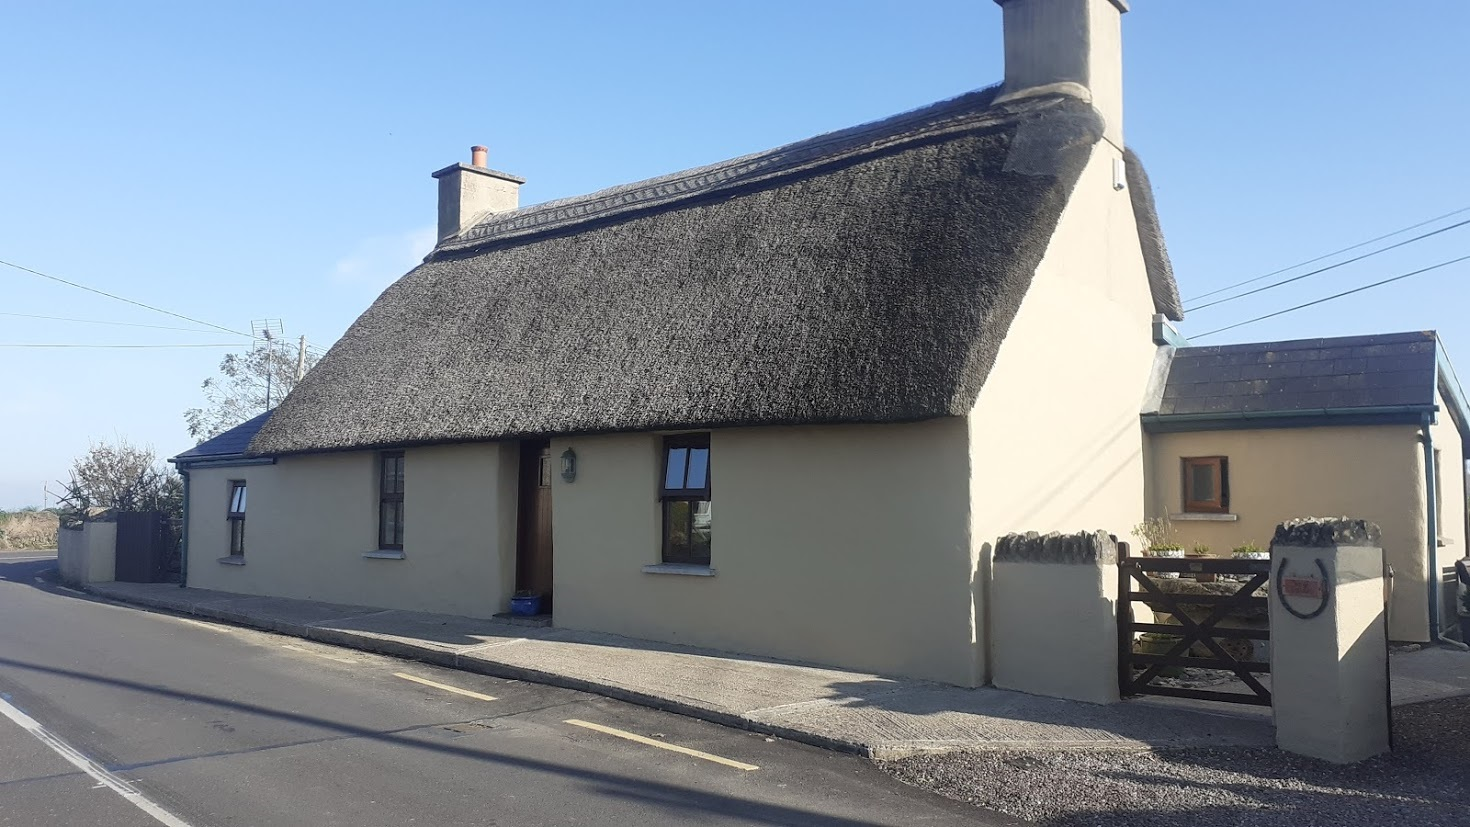 Thatched Cottage in Cork, Ireland